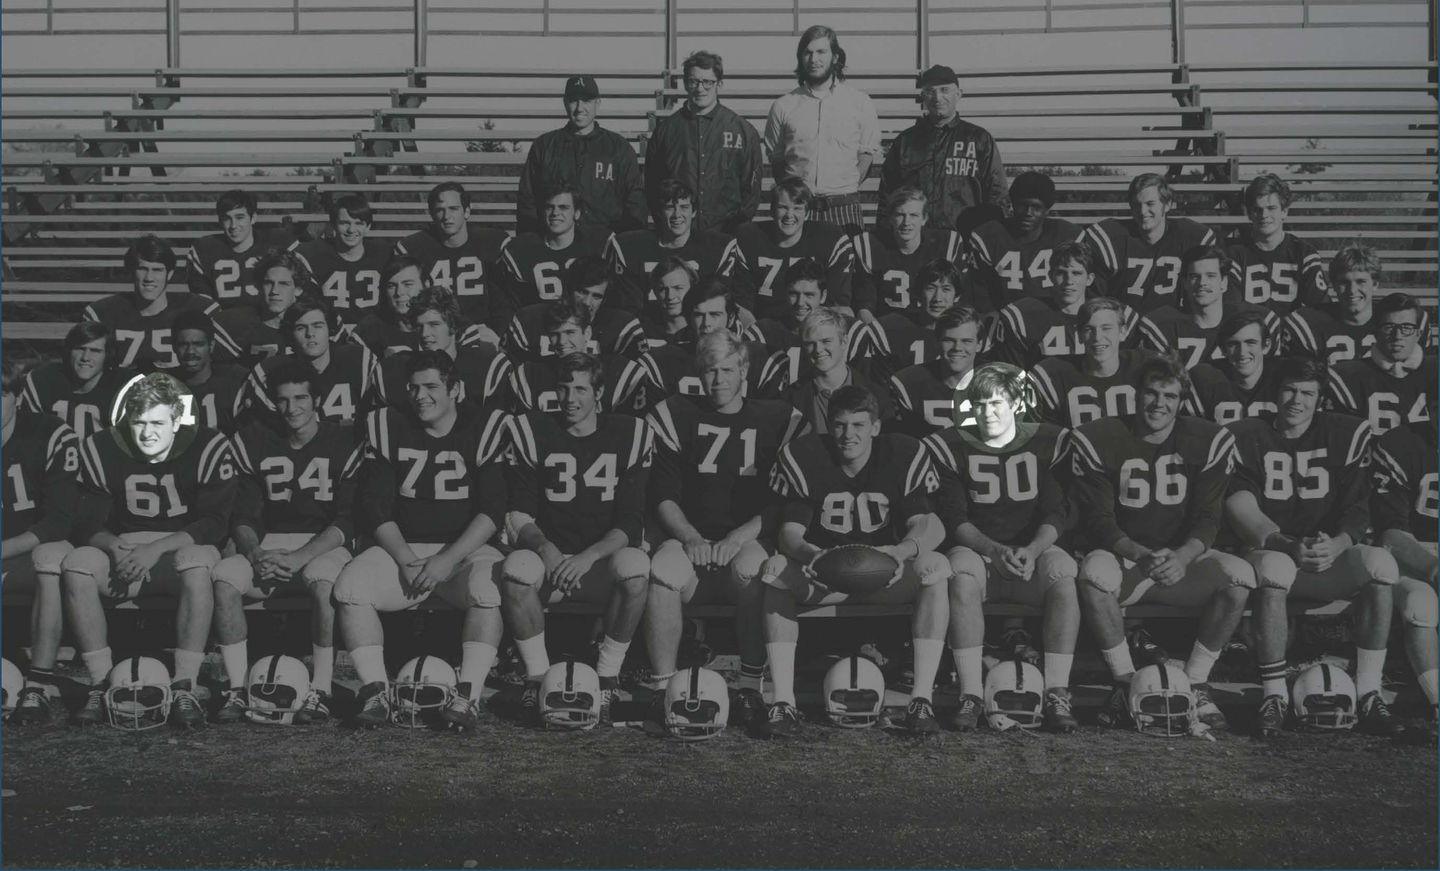 The team photo of the 1970 Andover football squad, featuring Bill Belichick (No. 50) and Ernie Adams (No. 61).